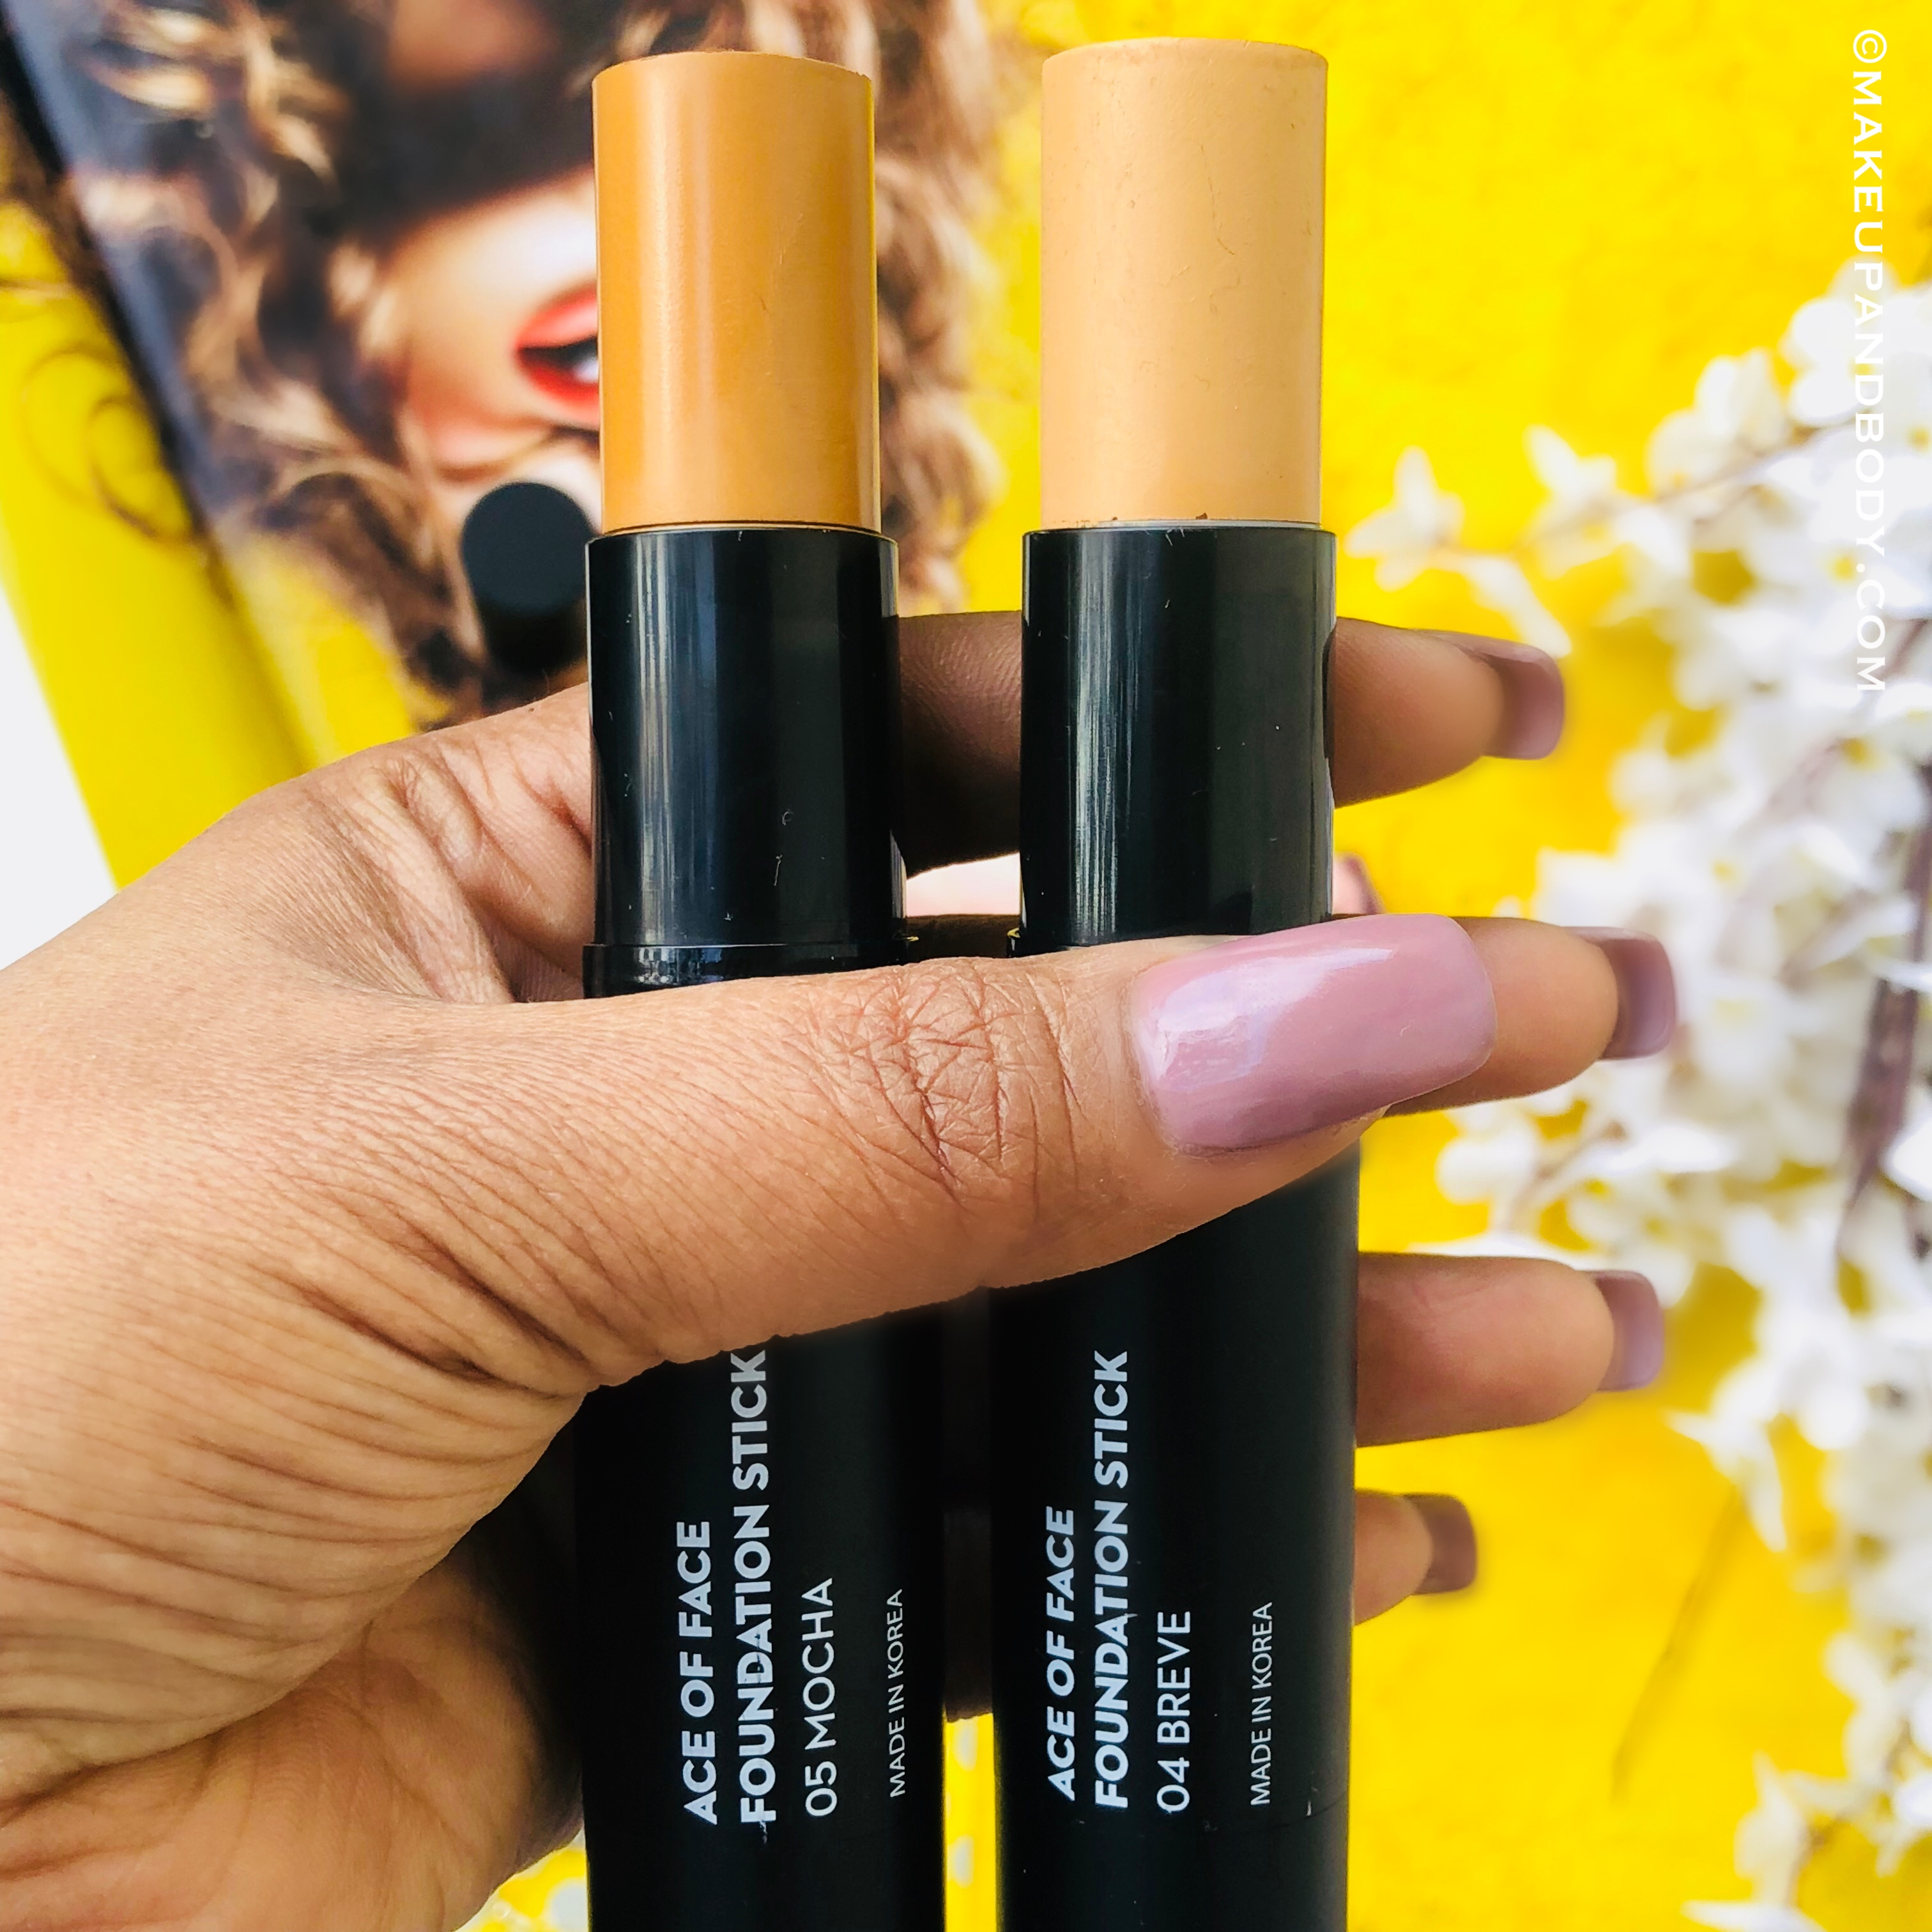 SUGAR Ace Of Face Foundation Stick - Review And Swatches